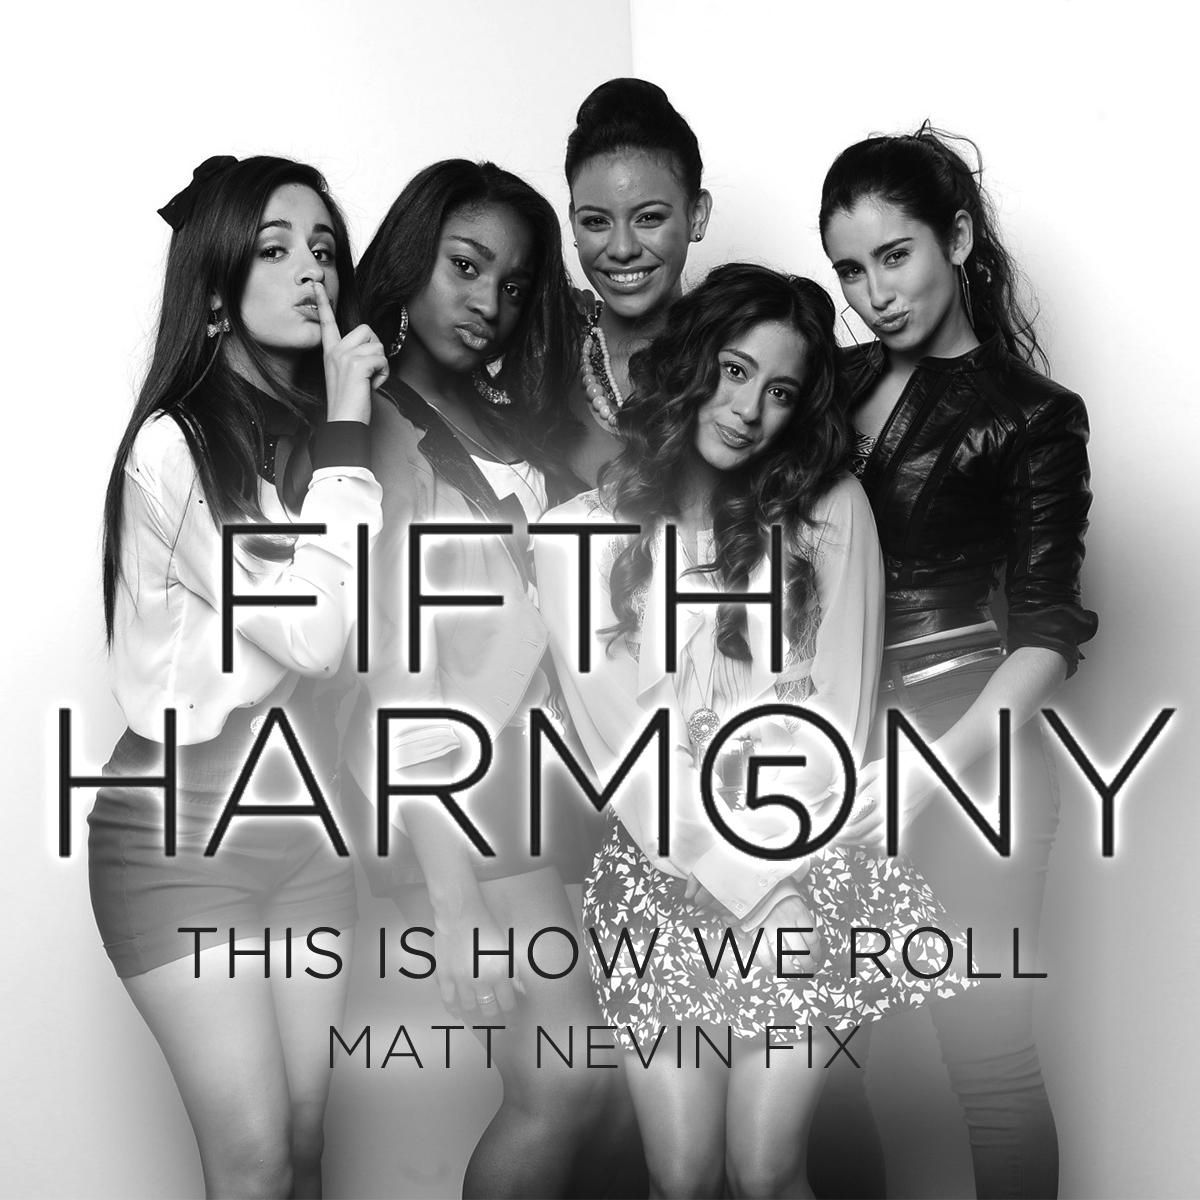 Download fifth harmony - Free MP3 Songs